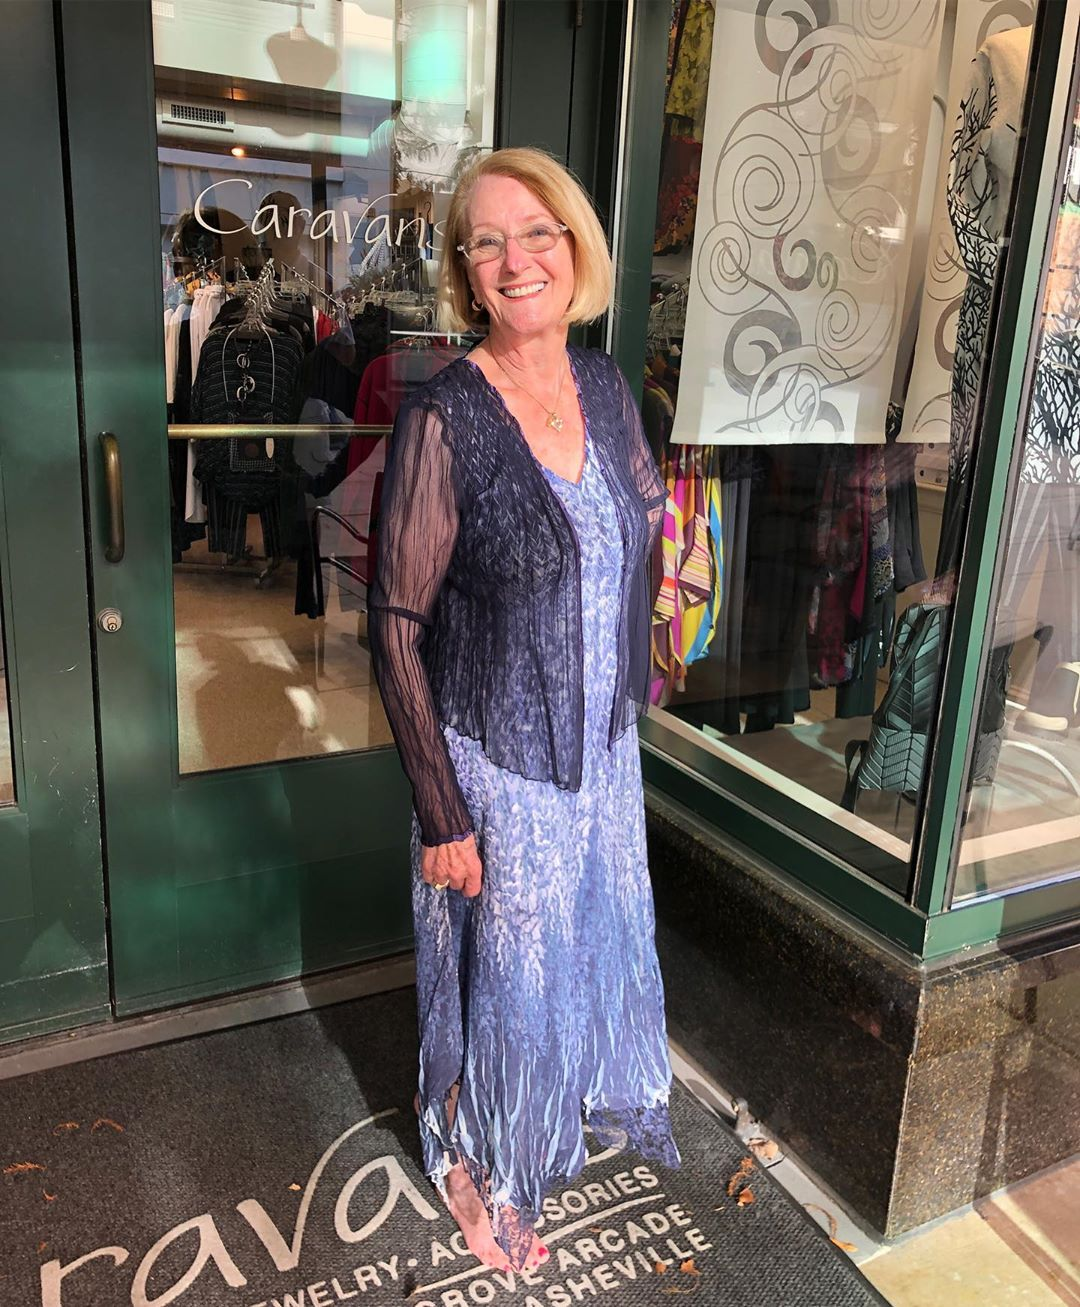 Mary is ready for the weekend wedding festivities in this fabulous ensemble from @komarovstyle She's here from Michigan for a family wedding and saw this in the window and had to have! She looks absolutely gorgeous @grovearcade @caravans_asheville